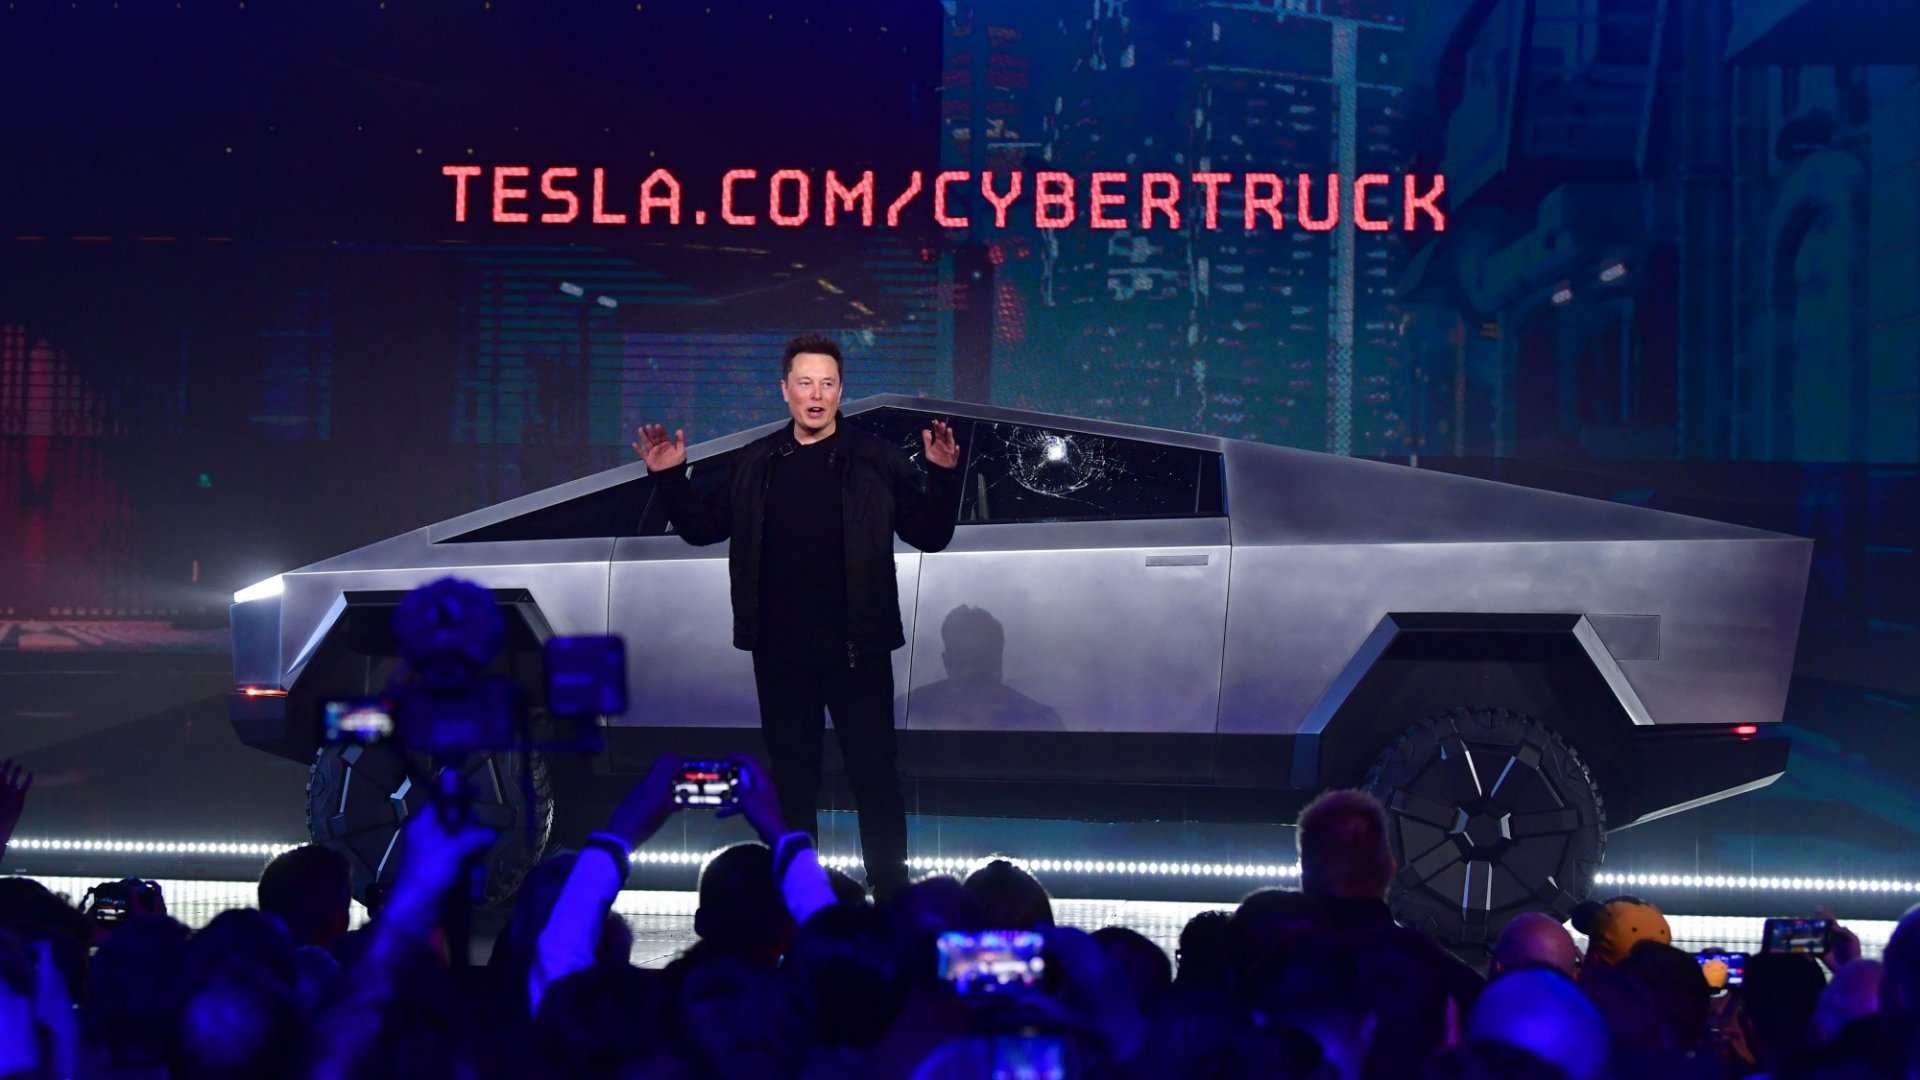 Elon Musk and Tesla's Cybertruck.